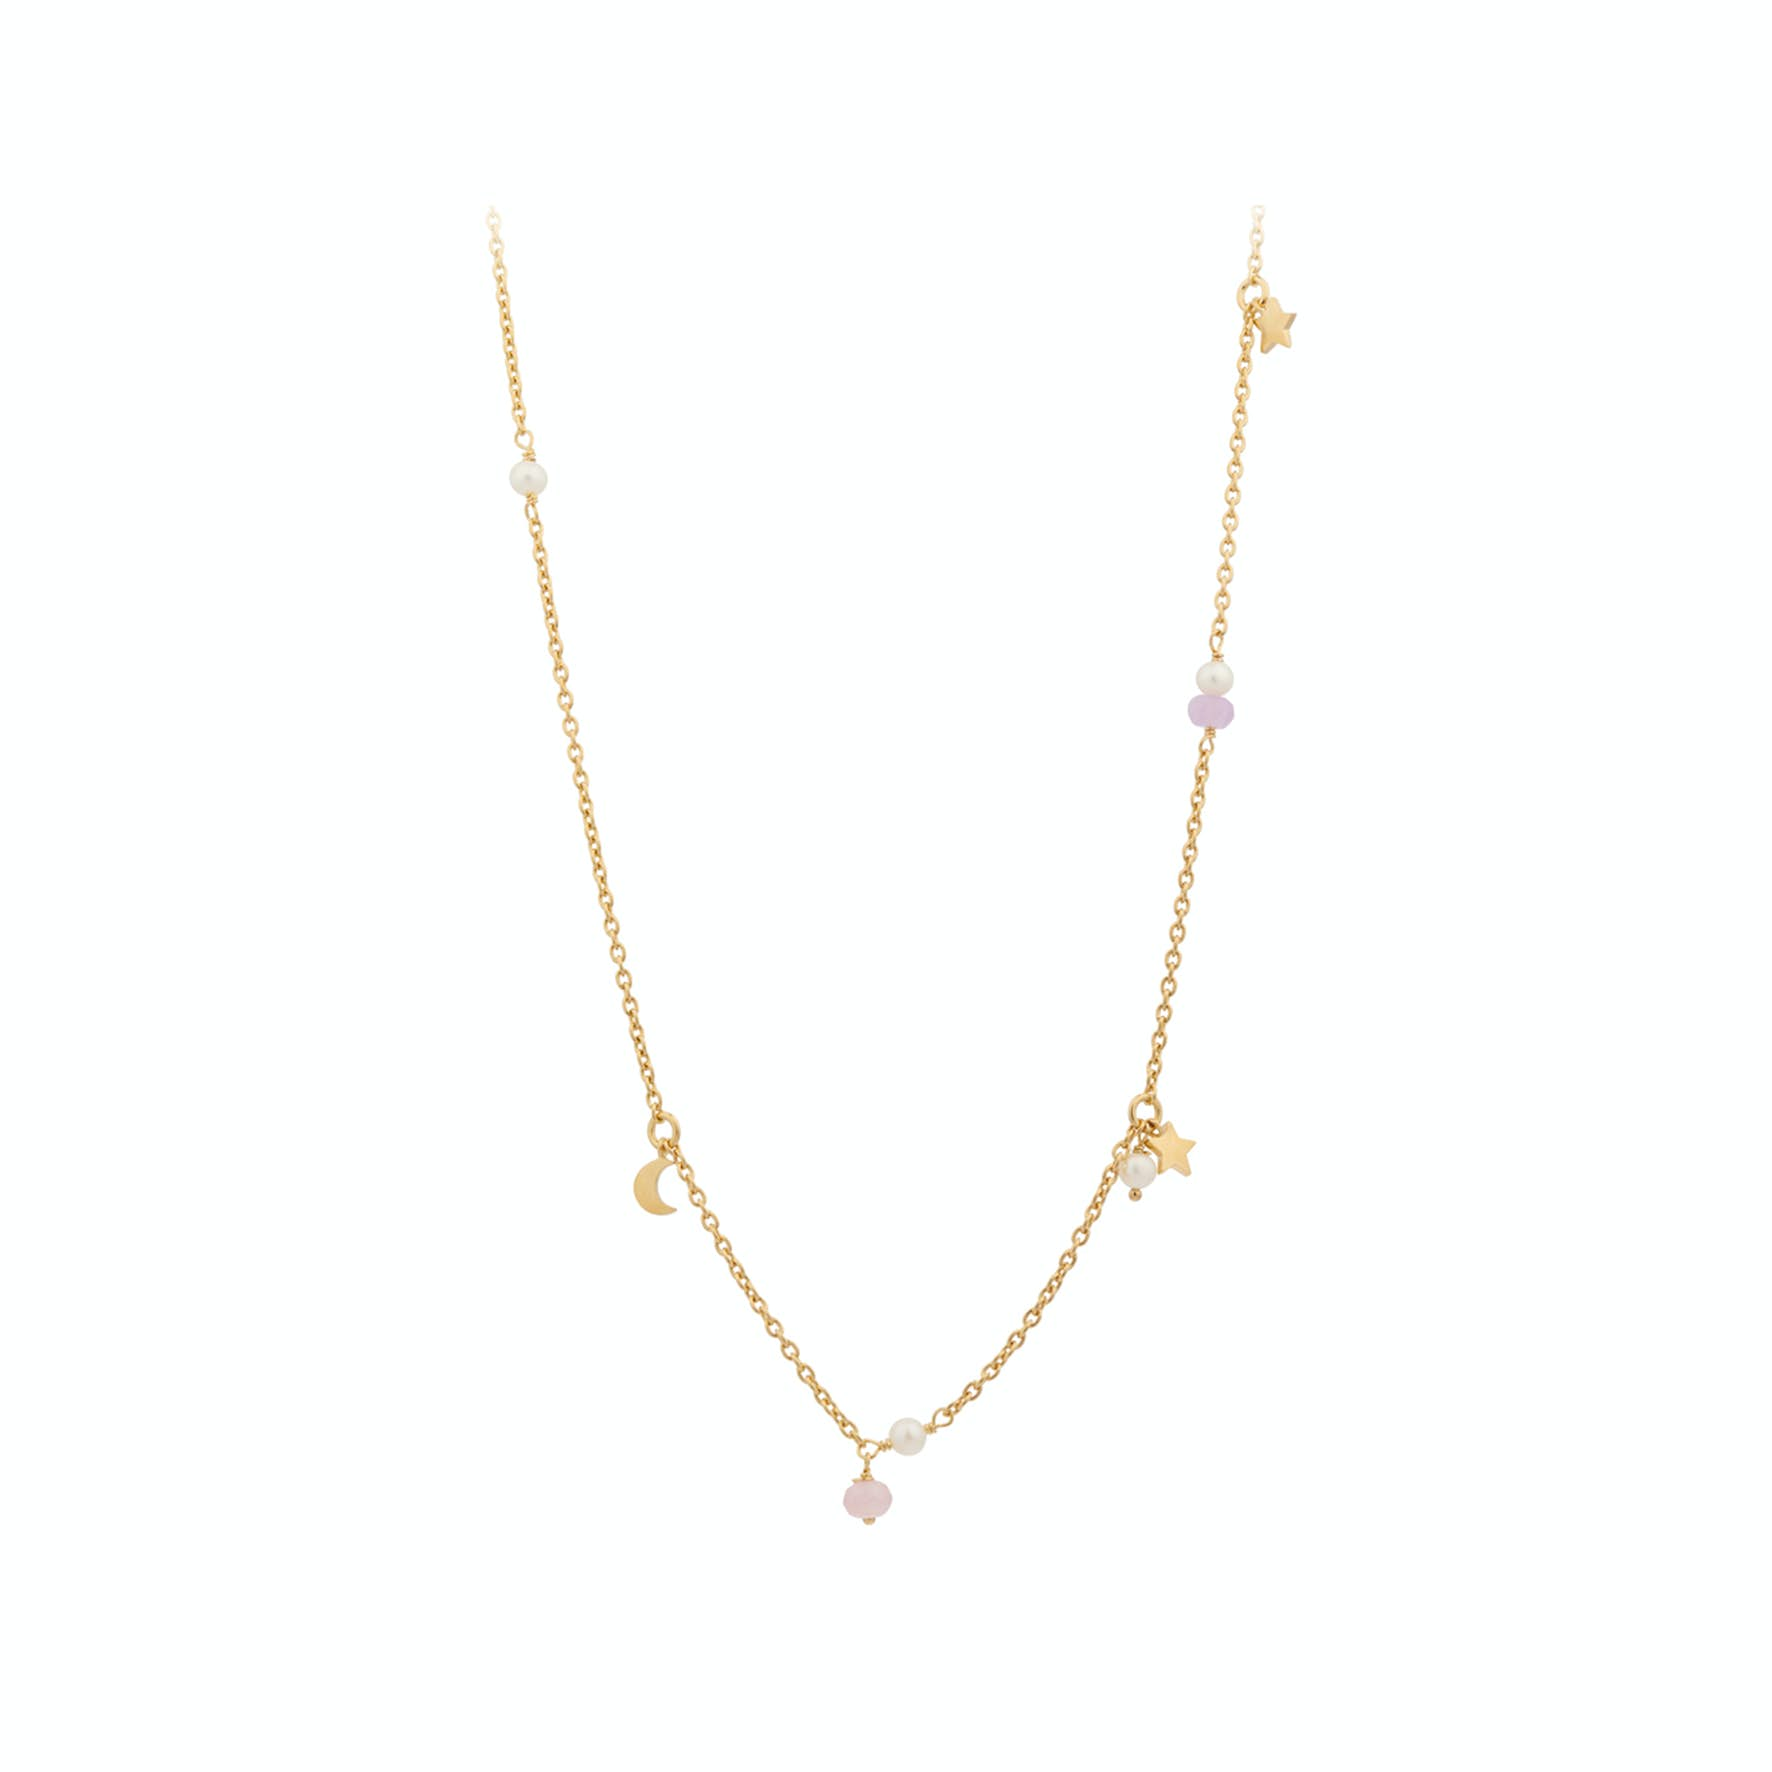 Pastel Dream Necklace from Pernille Corydon in Goldplated-Silver Sterling 925  Pink Agate, Purple Agate,Freshwater Pearl